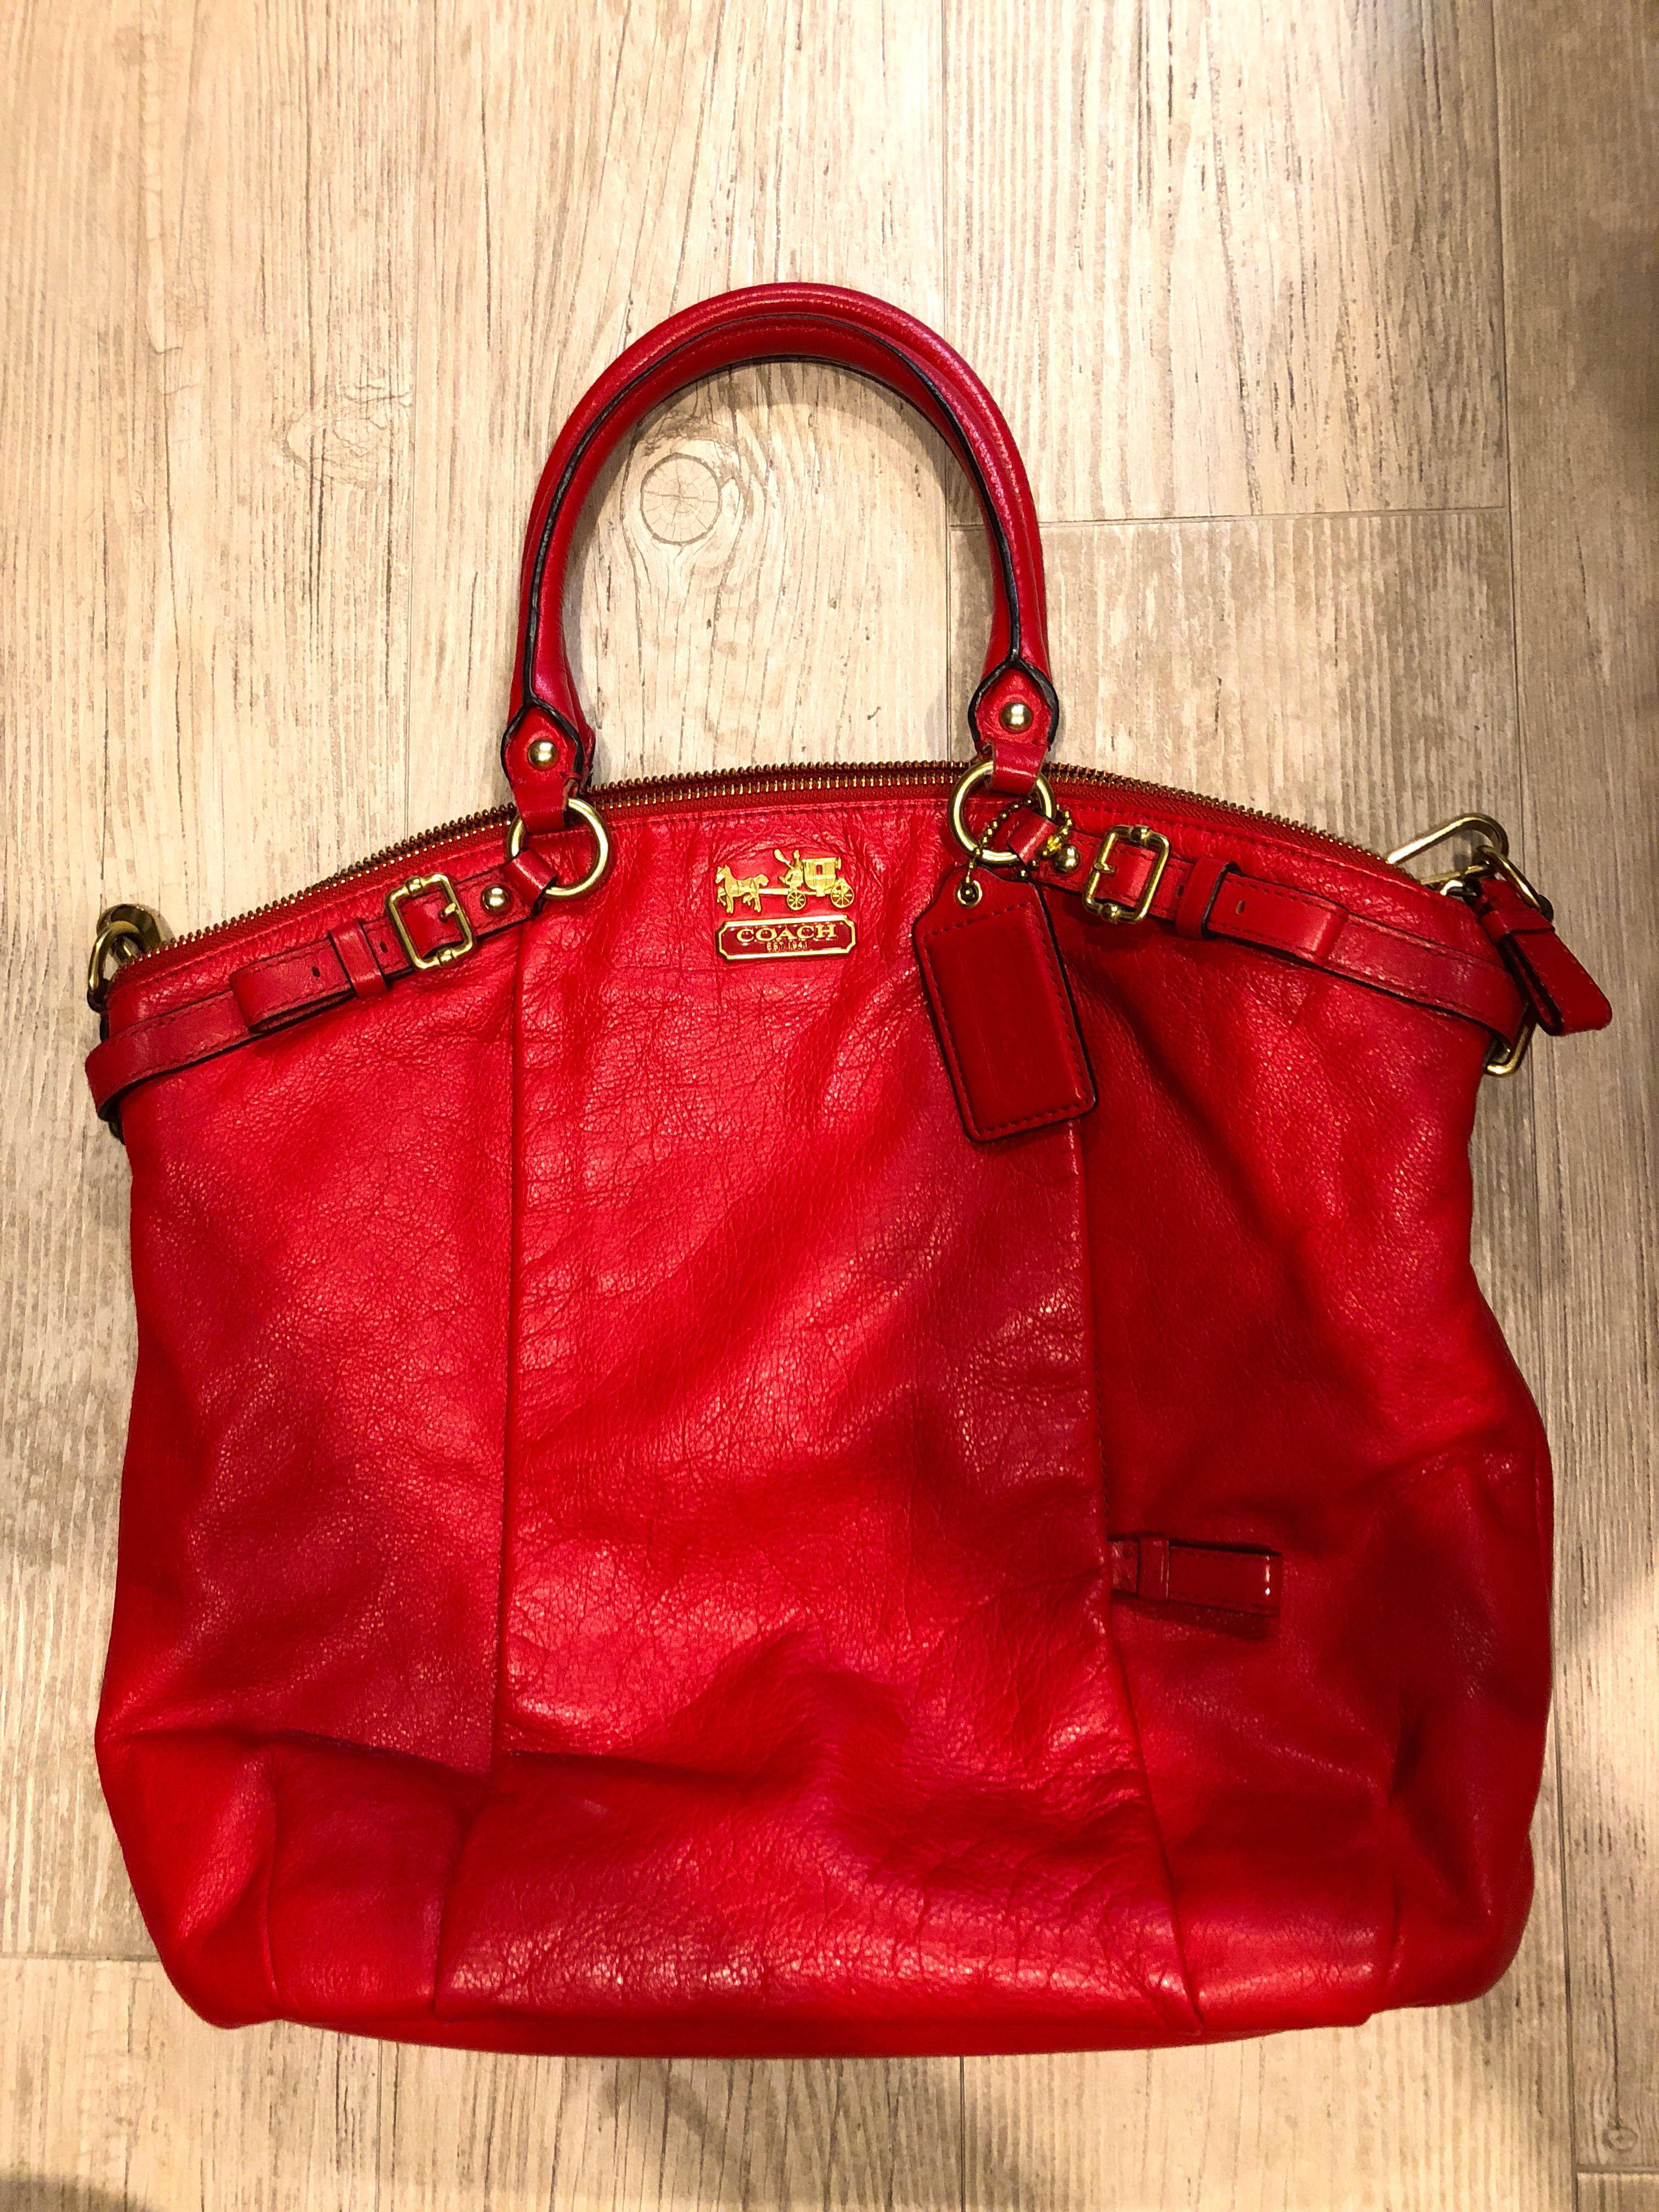 2d95b00de1e3 ... discount code for pre loved coach tote bag with side sling luxury bags  wallets handbags on